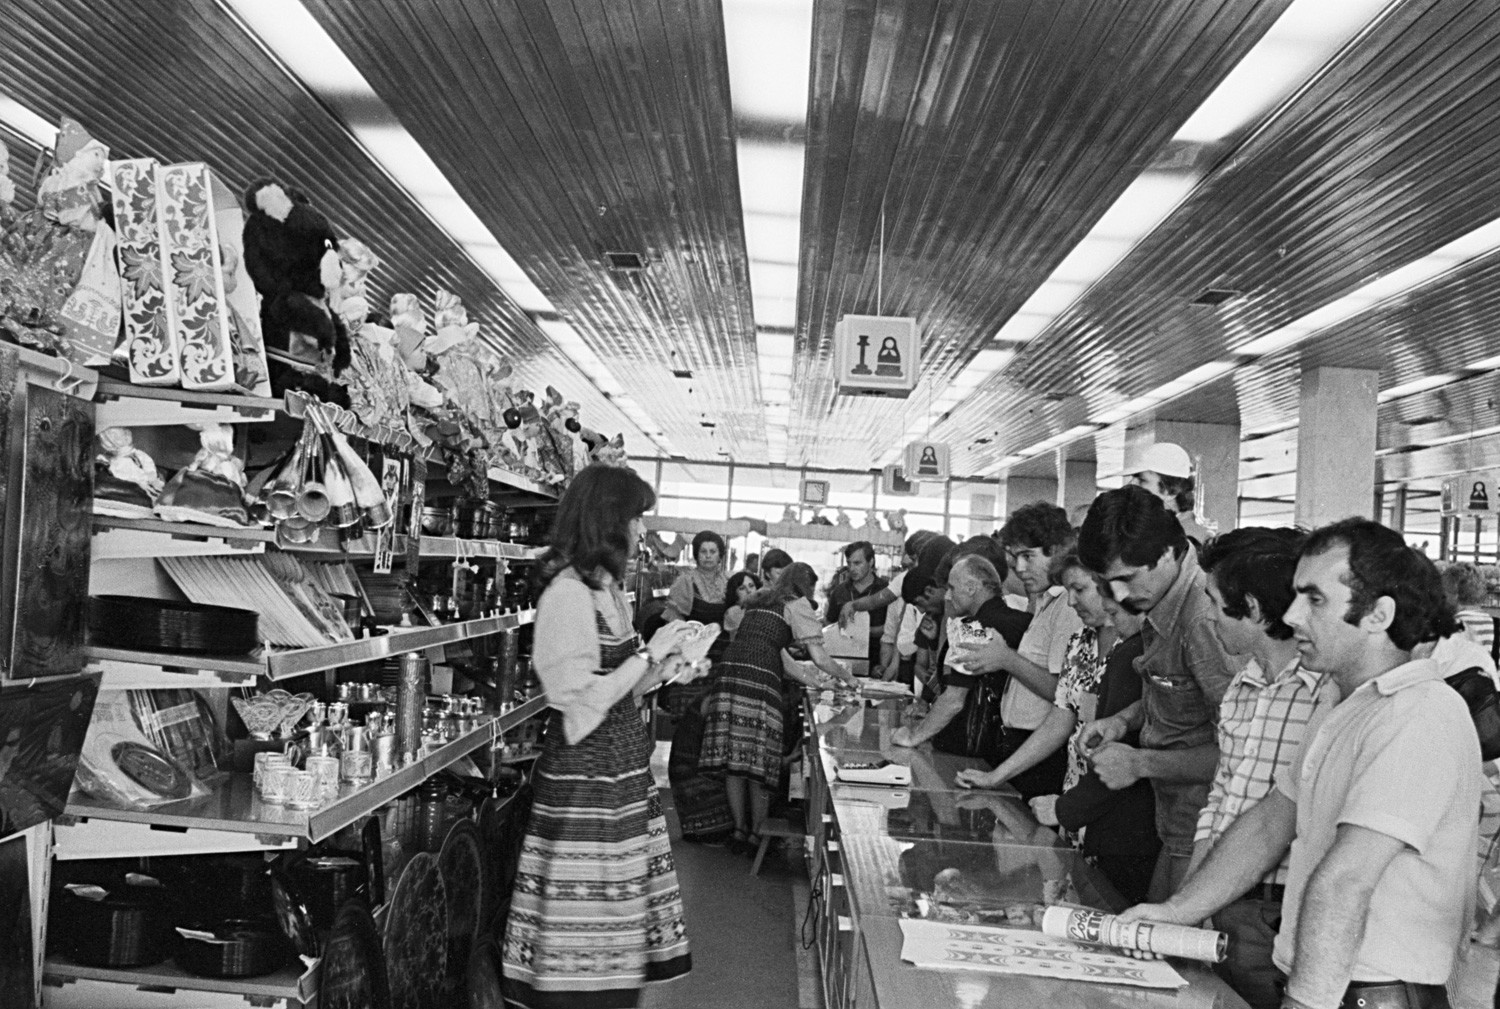 Gift department of the Olympic village shopping centre, 1980.